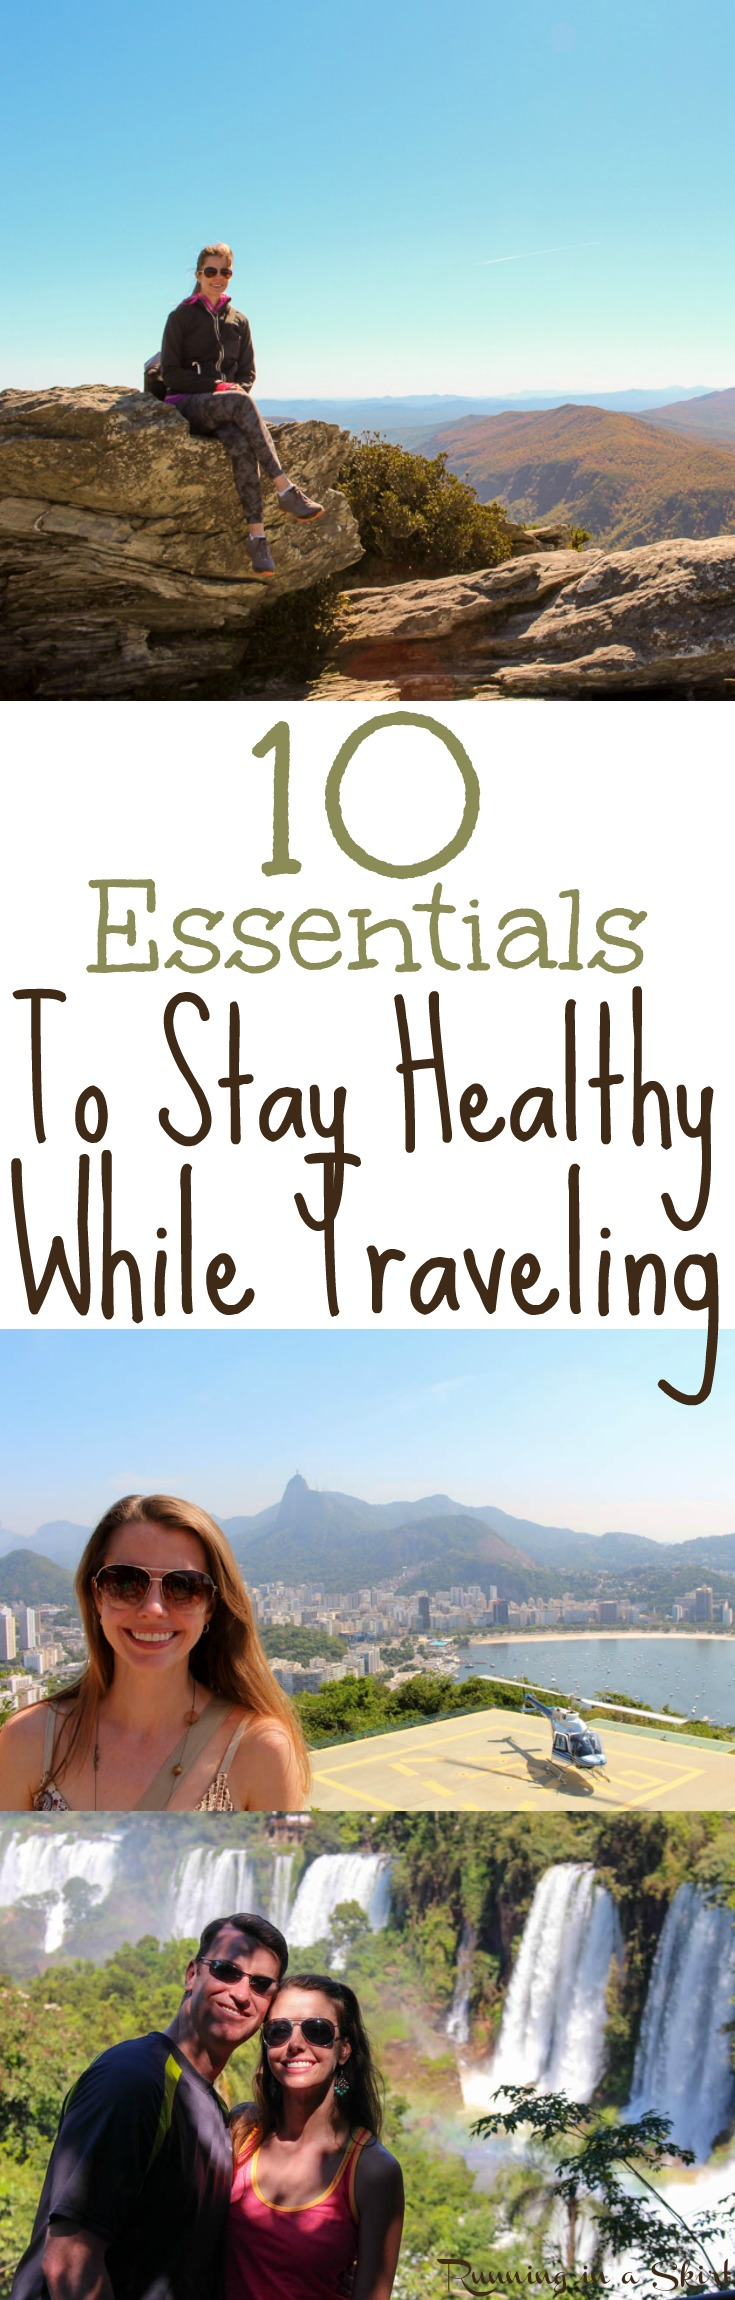 10 Tips for Healthy Travel - Essentials to Stay Healthy While Traveling/ Running in a Skirt